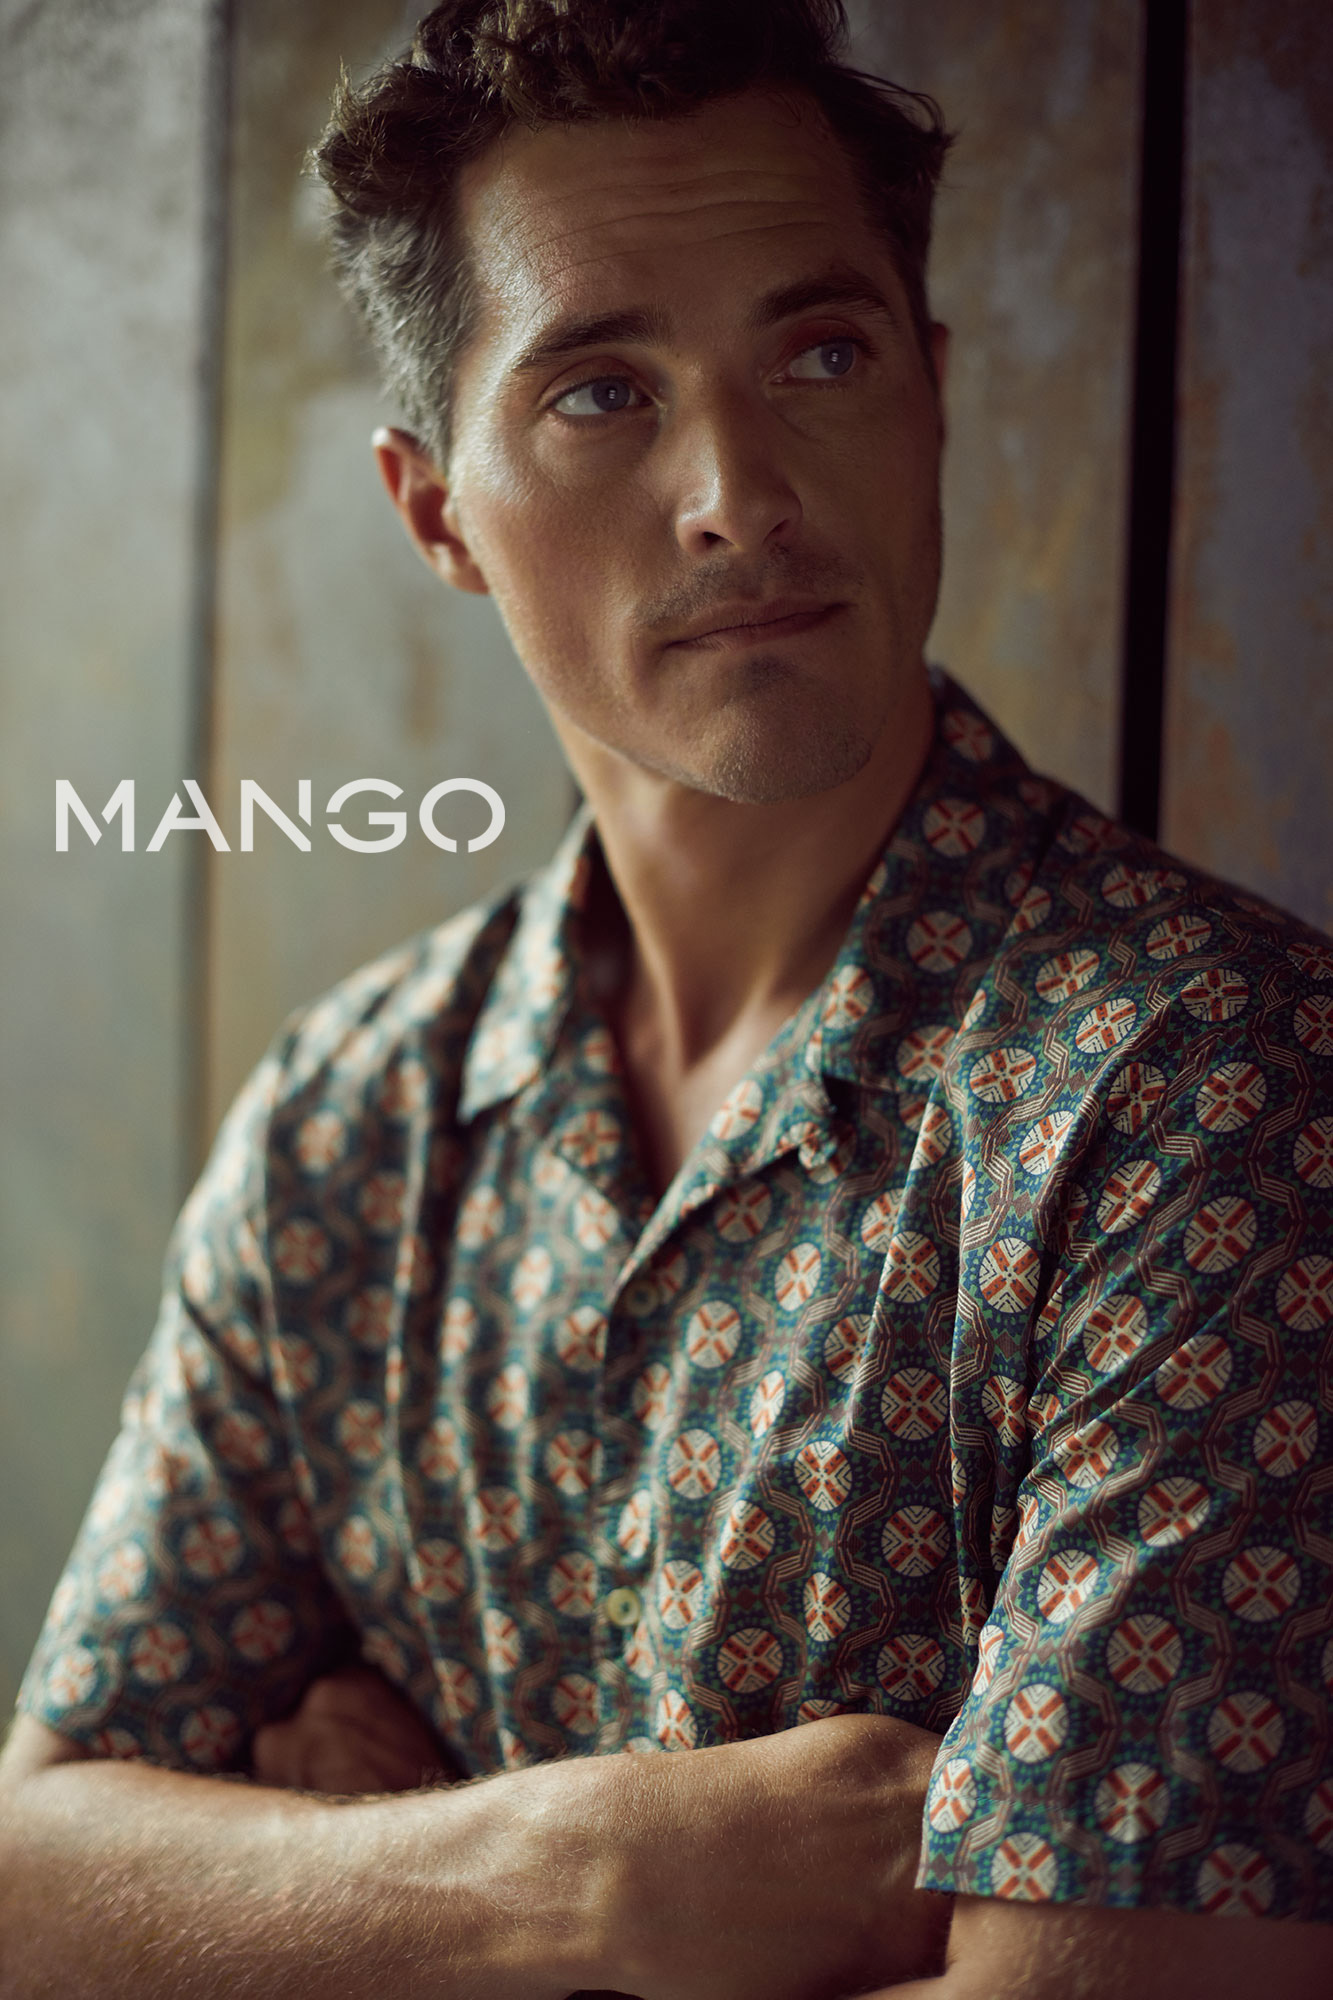 Mango Man 2018 | Piero Martinello | Mango | IO donna | Eva Orbetegli | Numerique Retouch Photo Retouching Studio